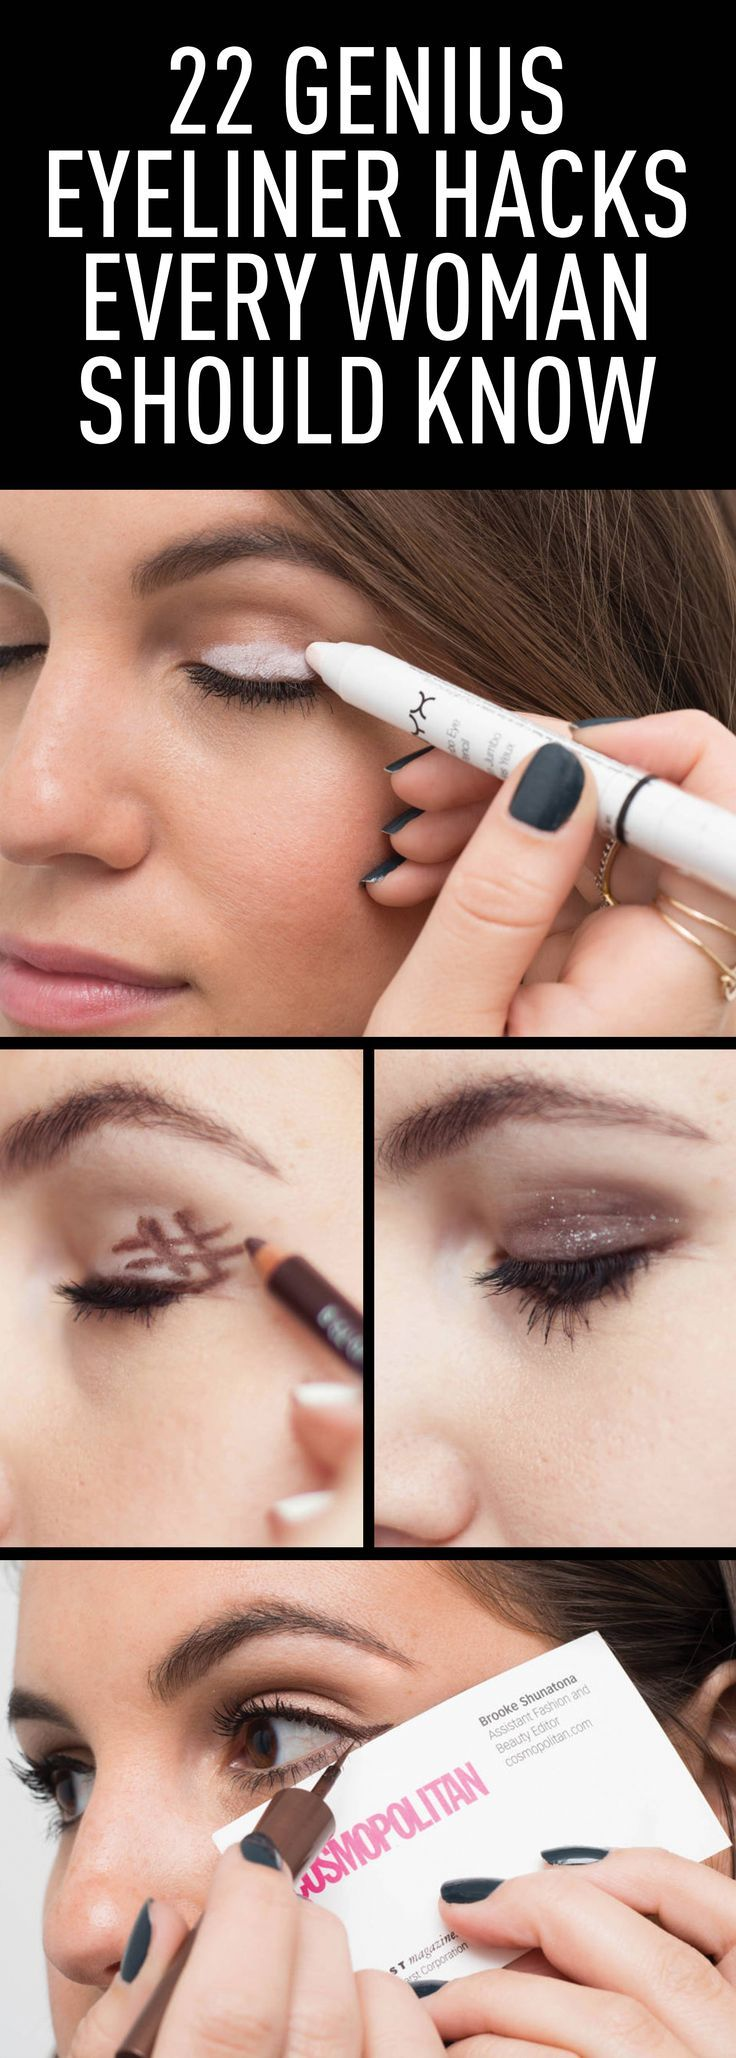 22 Genius Eyeliner Hacks Every Woman Needs to Know | Never let your winged liner make you late for work again.